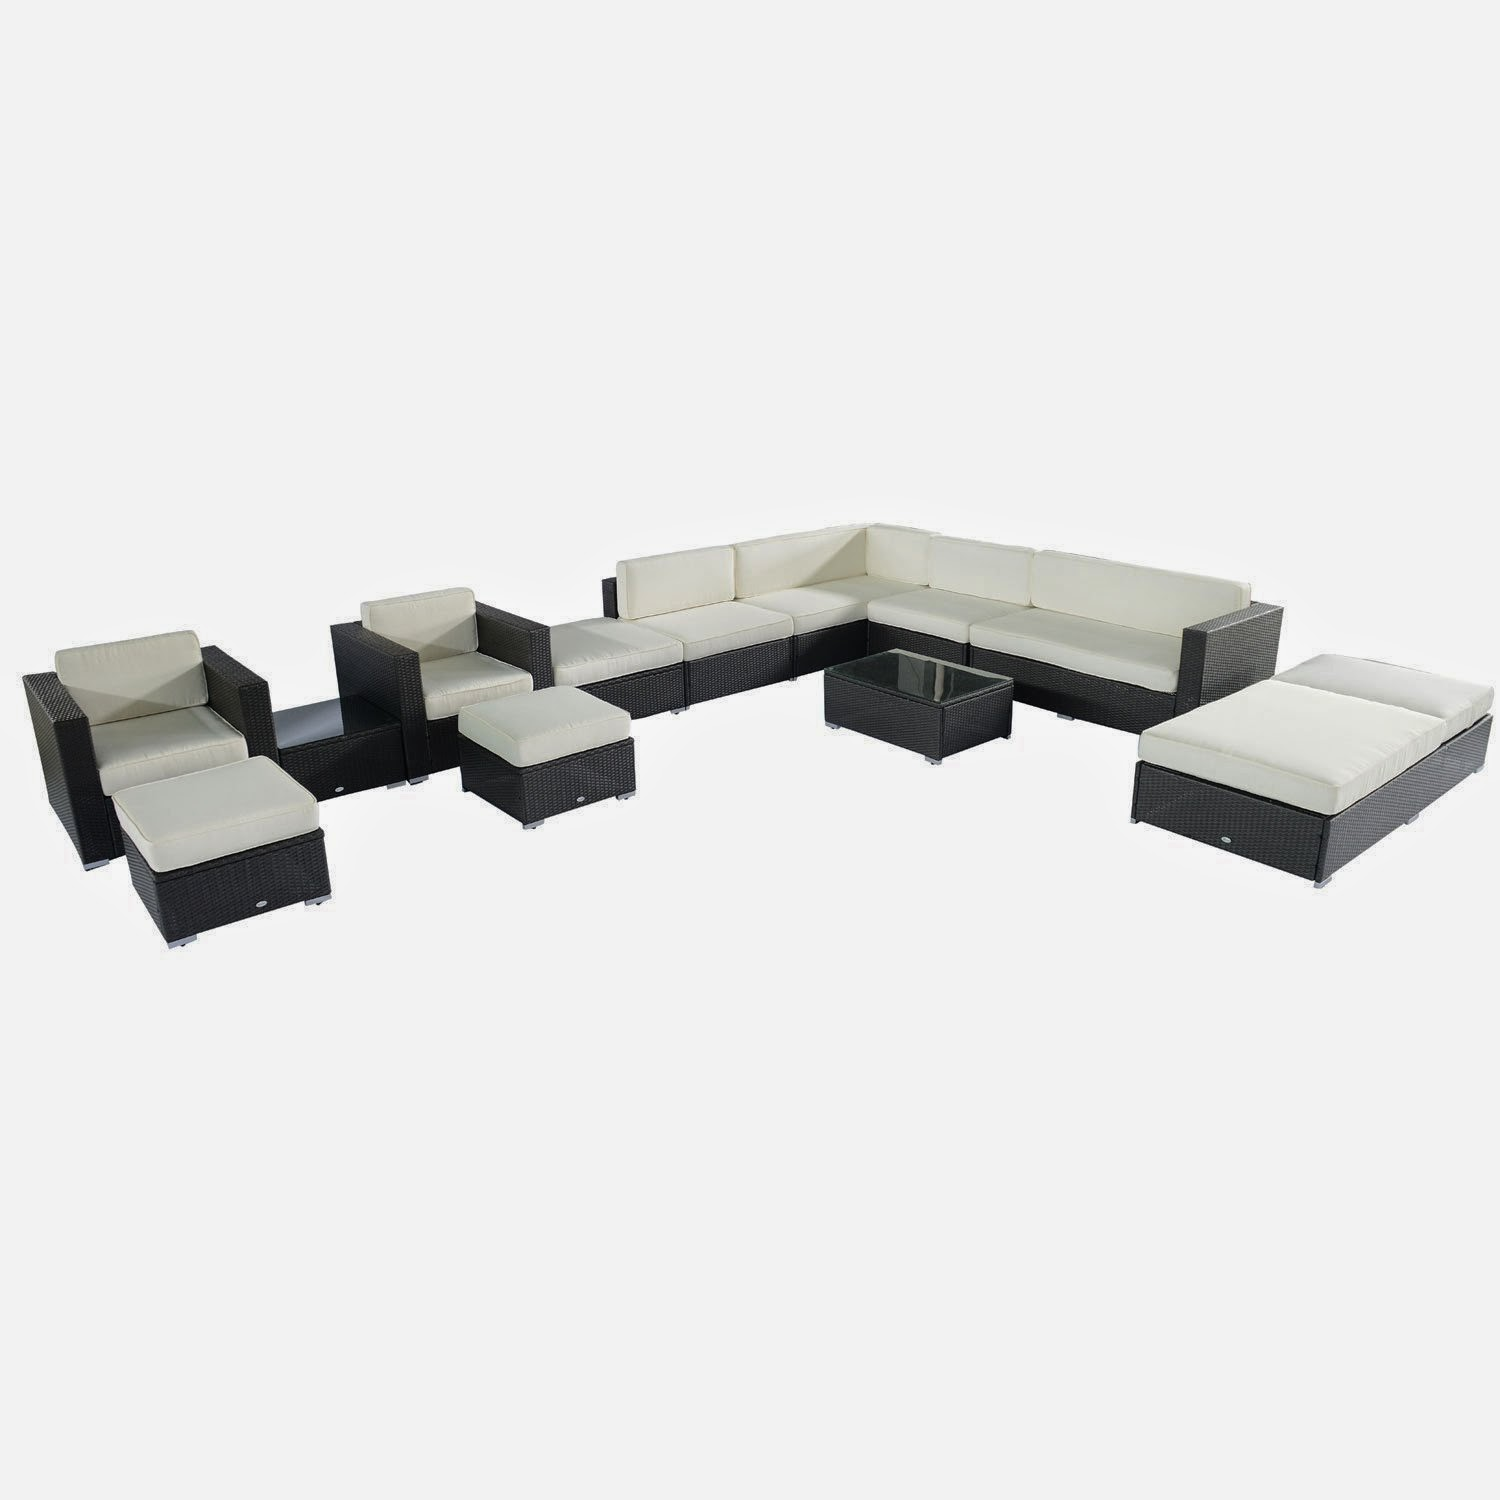 Outsunny Outdoor Rattan Sectional Furniture Outdoor